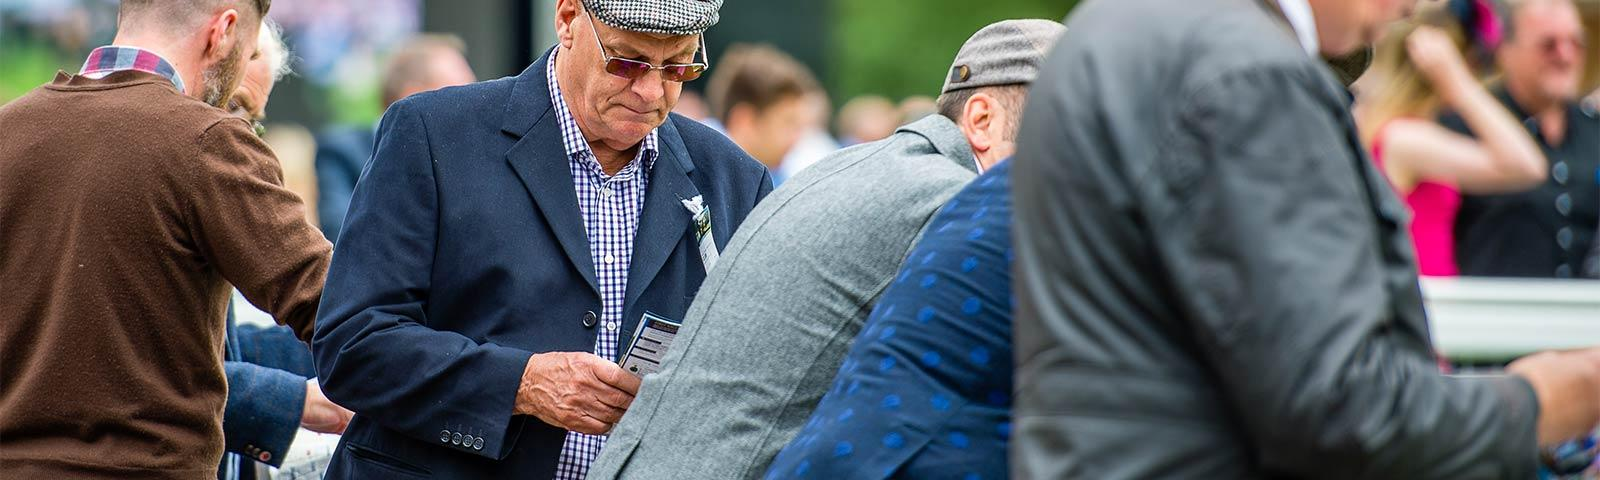 Group of gentlemen at the races, with one reading through a racecard.